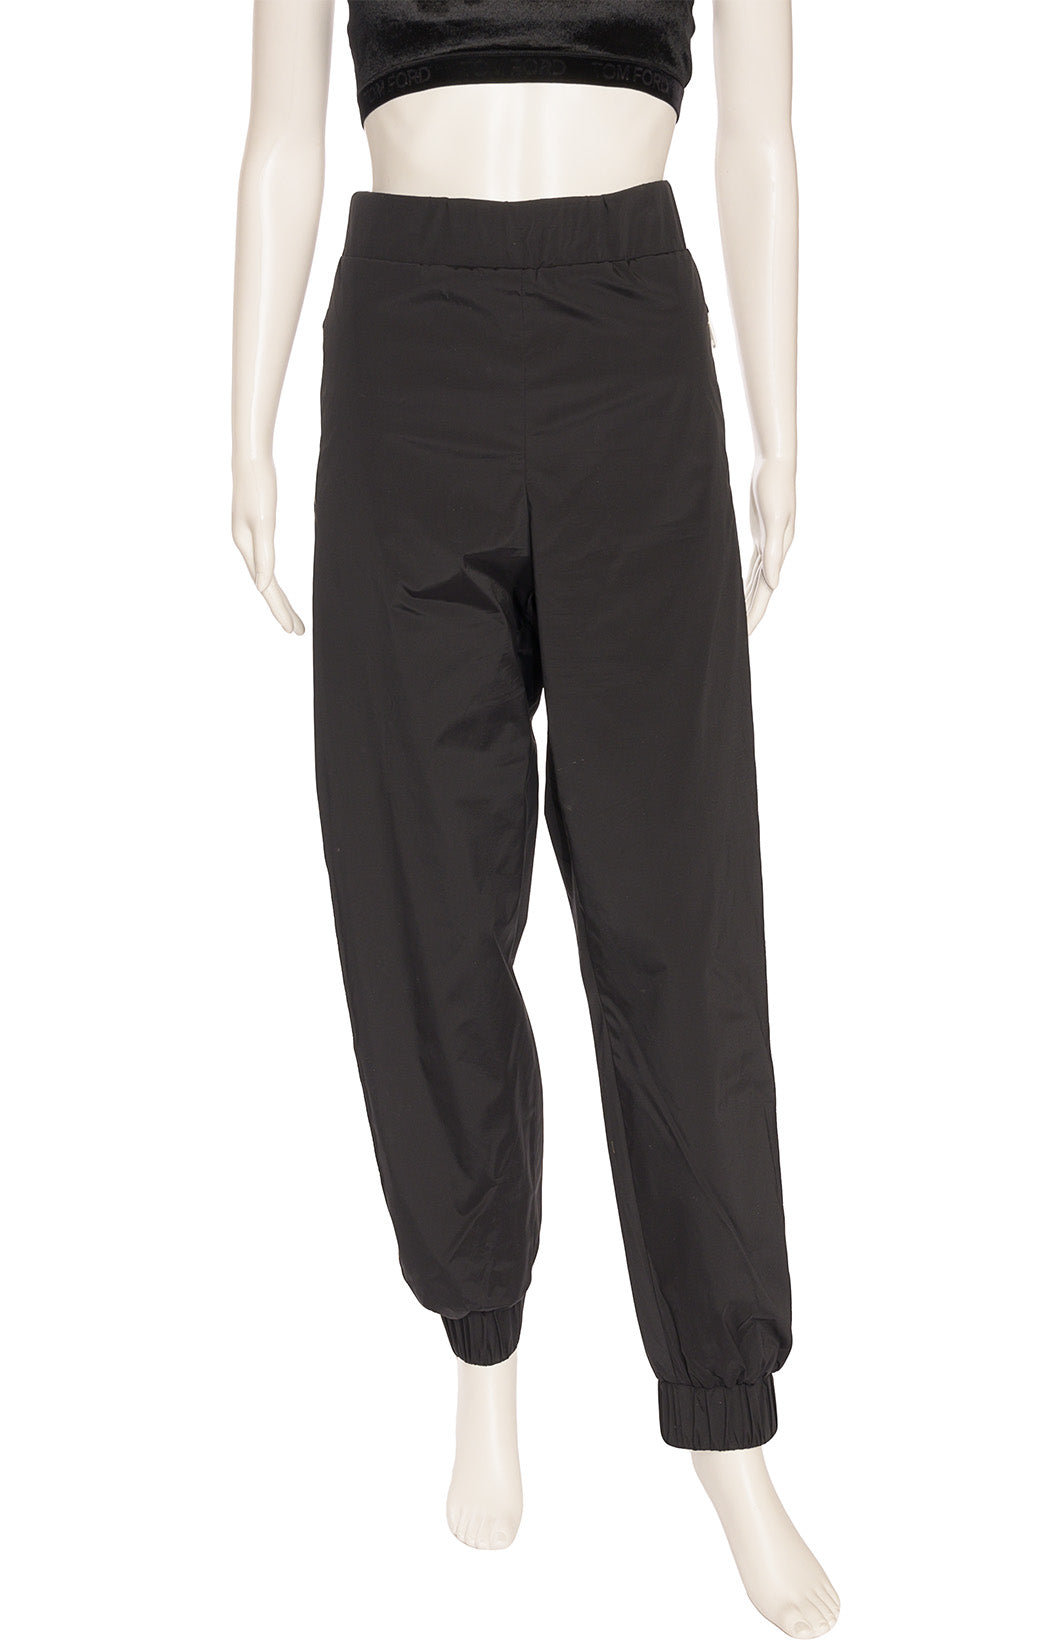 Front view of FENDI Sweatpants Size: IT 46 (comparable to US 8-10)